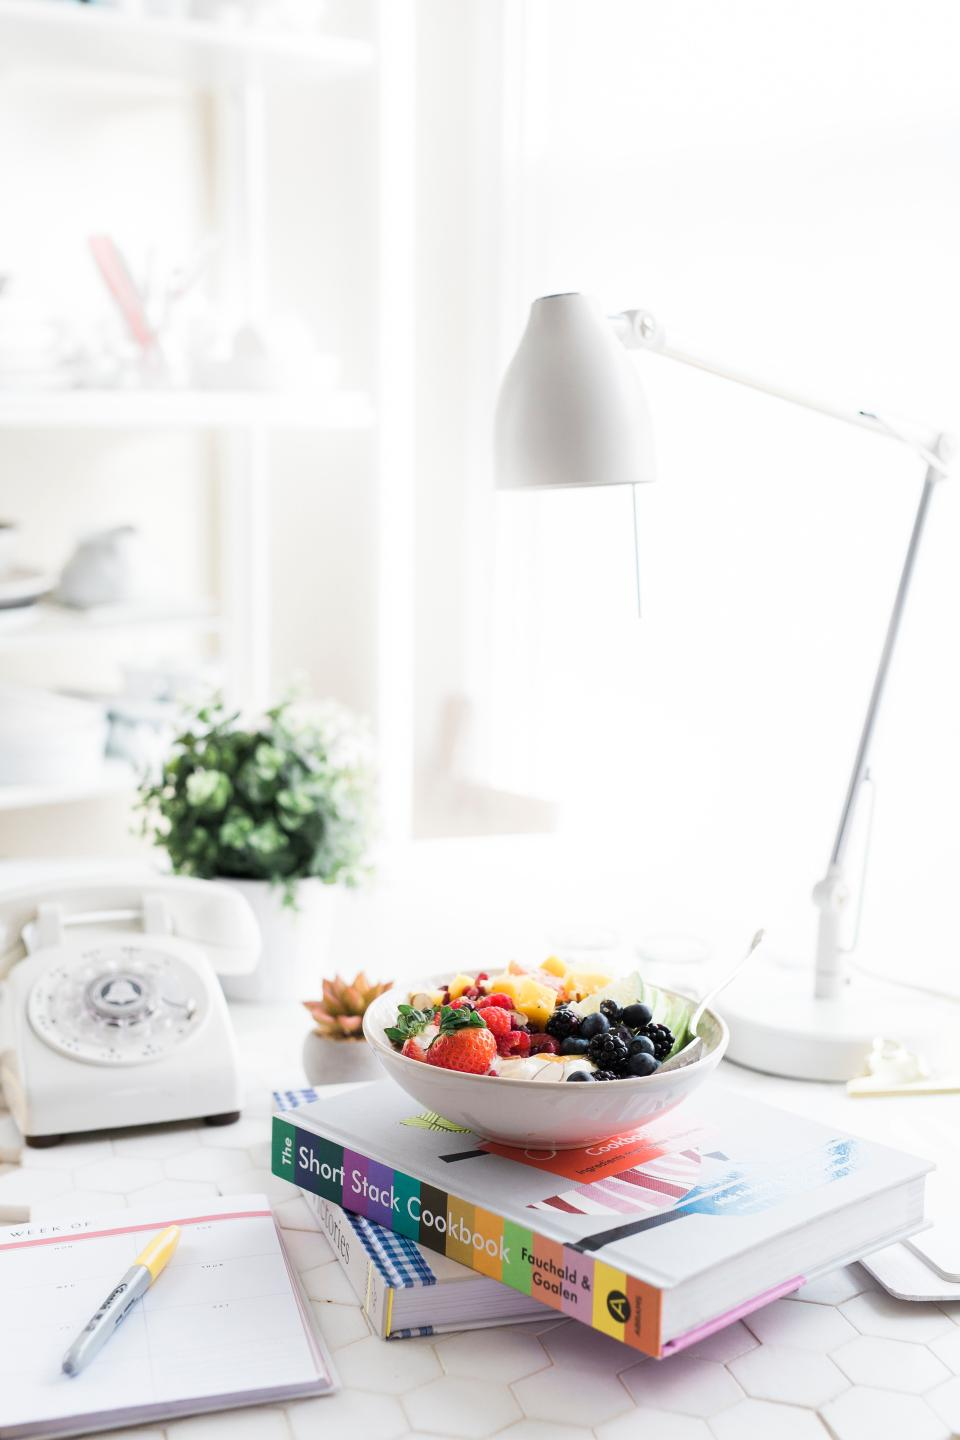 fruits food dessert sweets book notebook pen table white lamp interior design